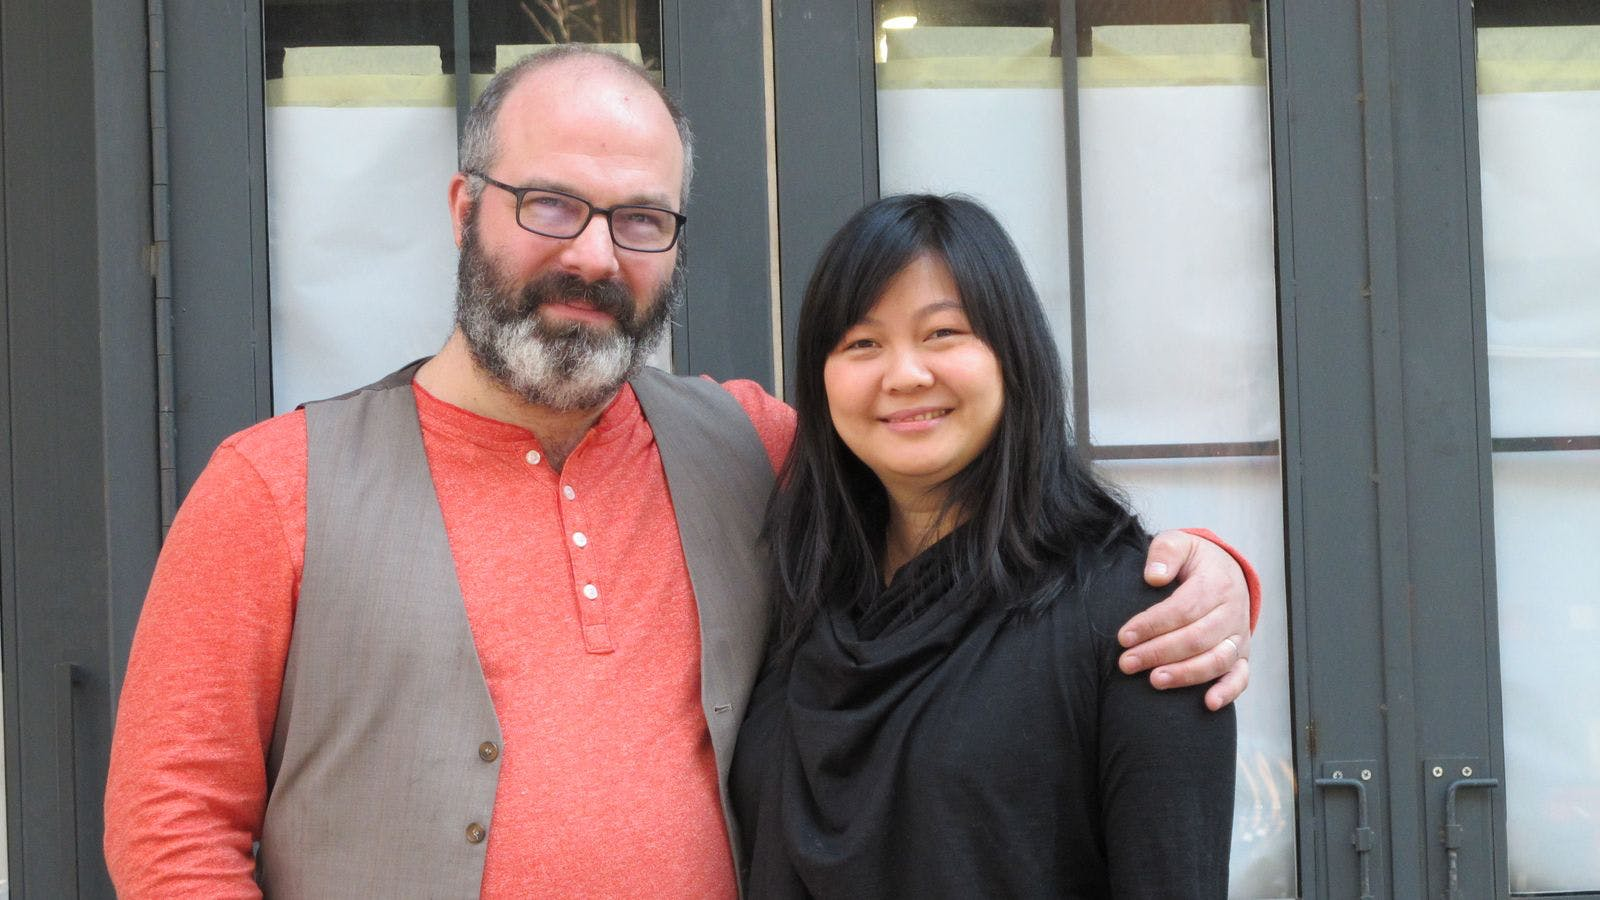 Photo of Ben Sandler and Jennifer Lim, owners of Wassail cider bar in NYC. Photo credit, Layla Khabiri